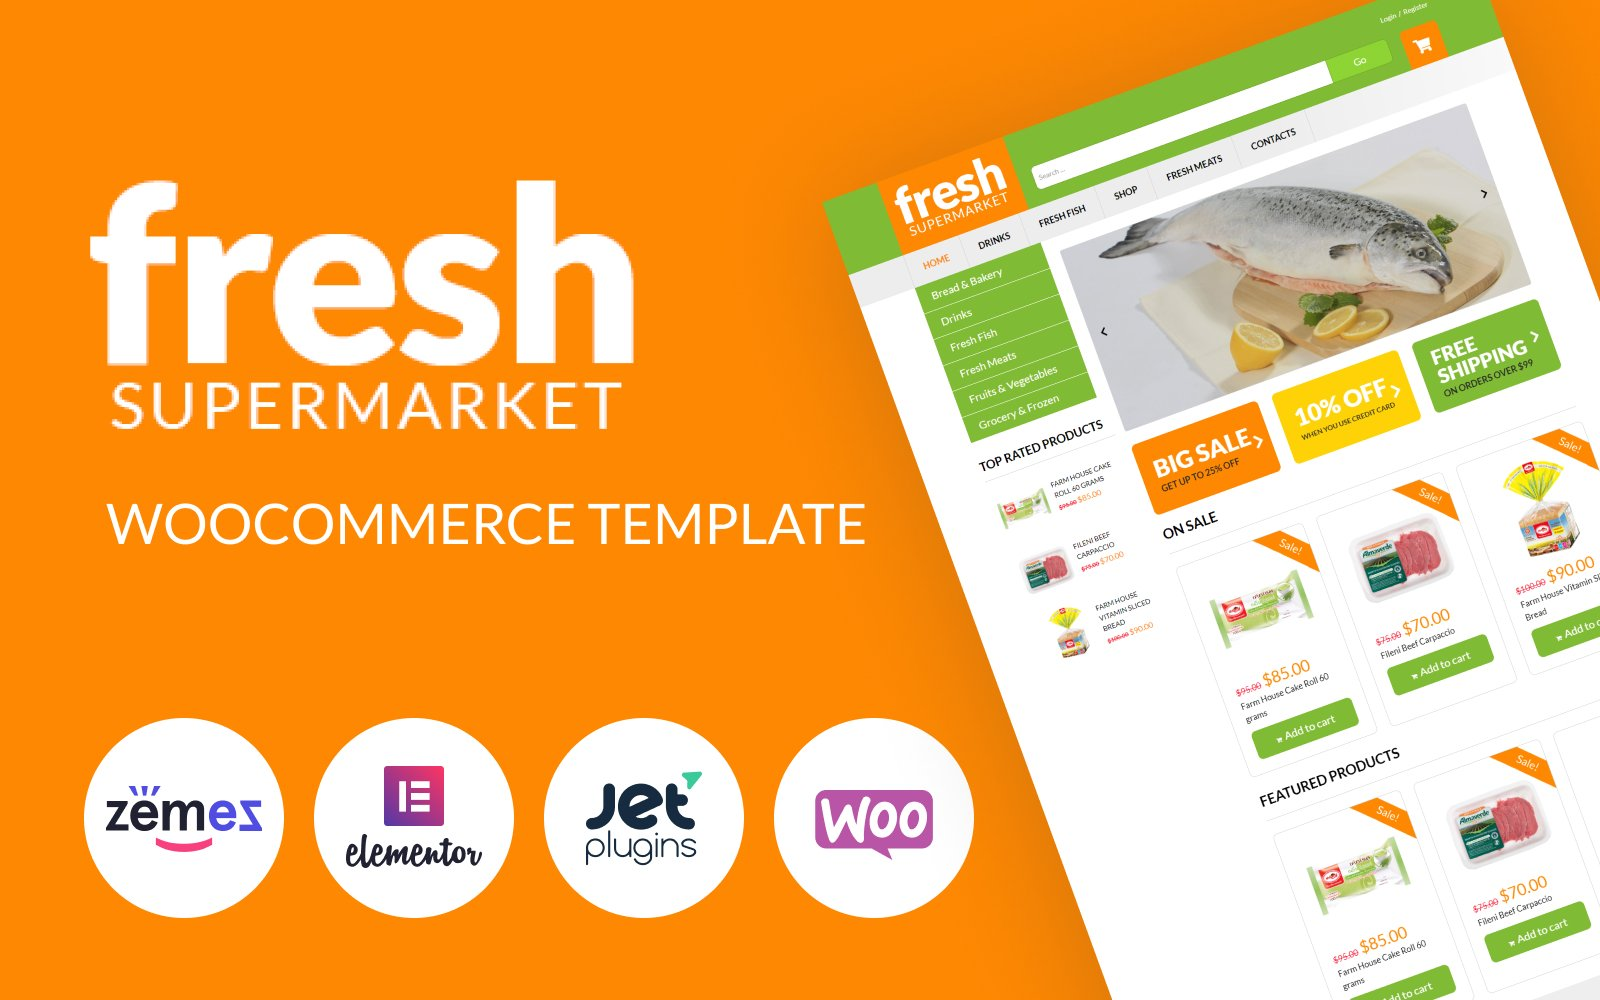 Fresh Fresh - Supermarket Woocommerce Template for easy sales №51254